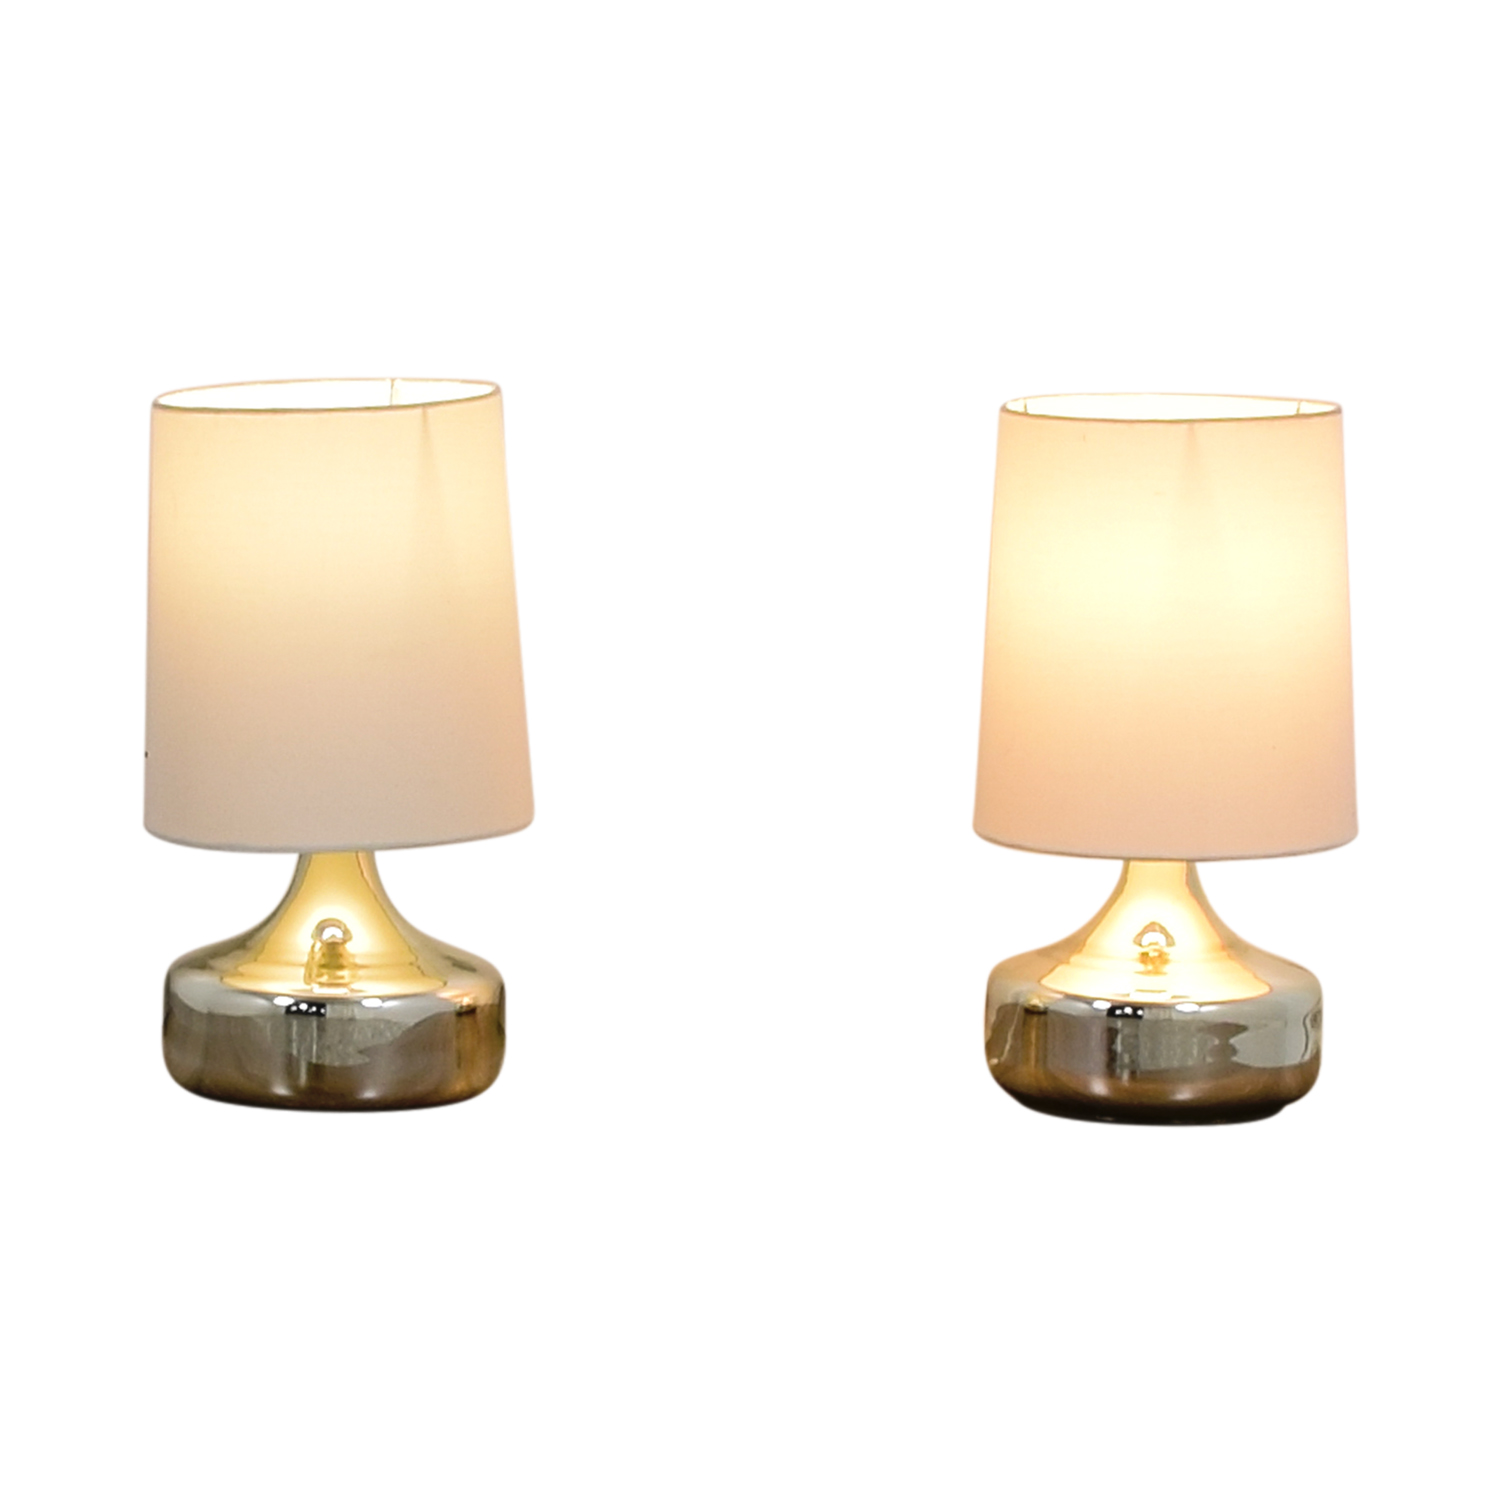 Crate and Barrel Crate & Barrel Silver Lamps Sofas